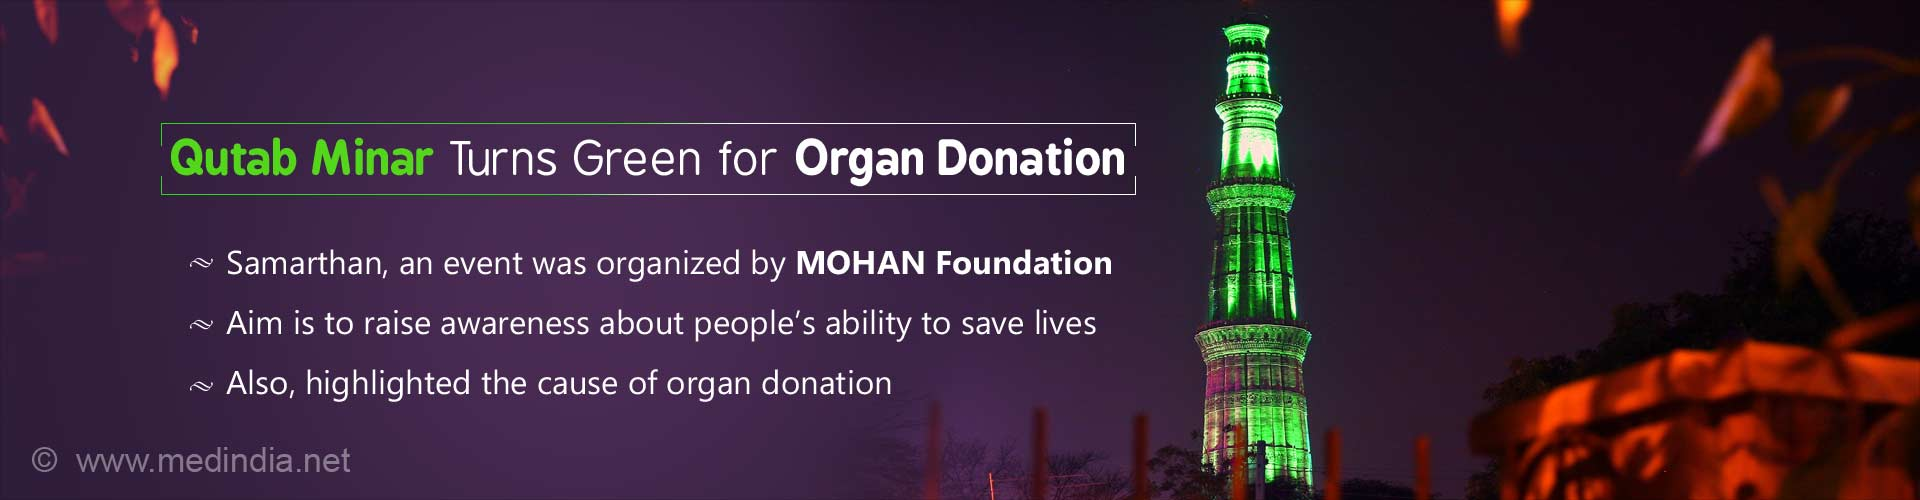 Qutab Minar Turns Green for Organ Donation